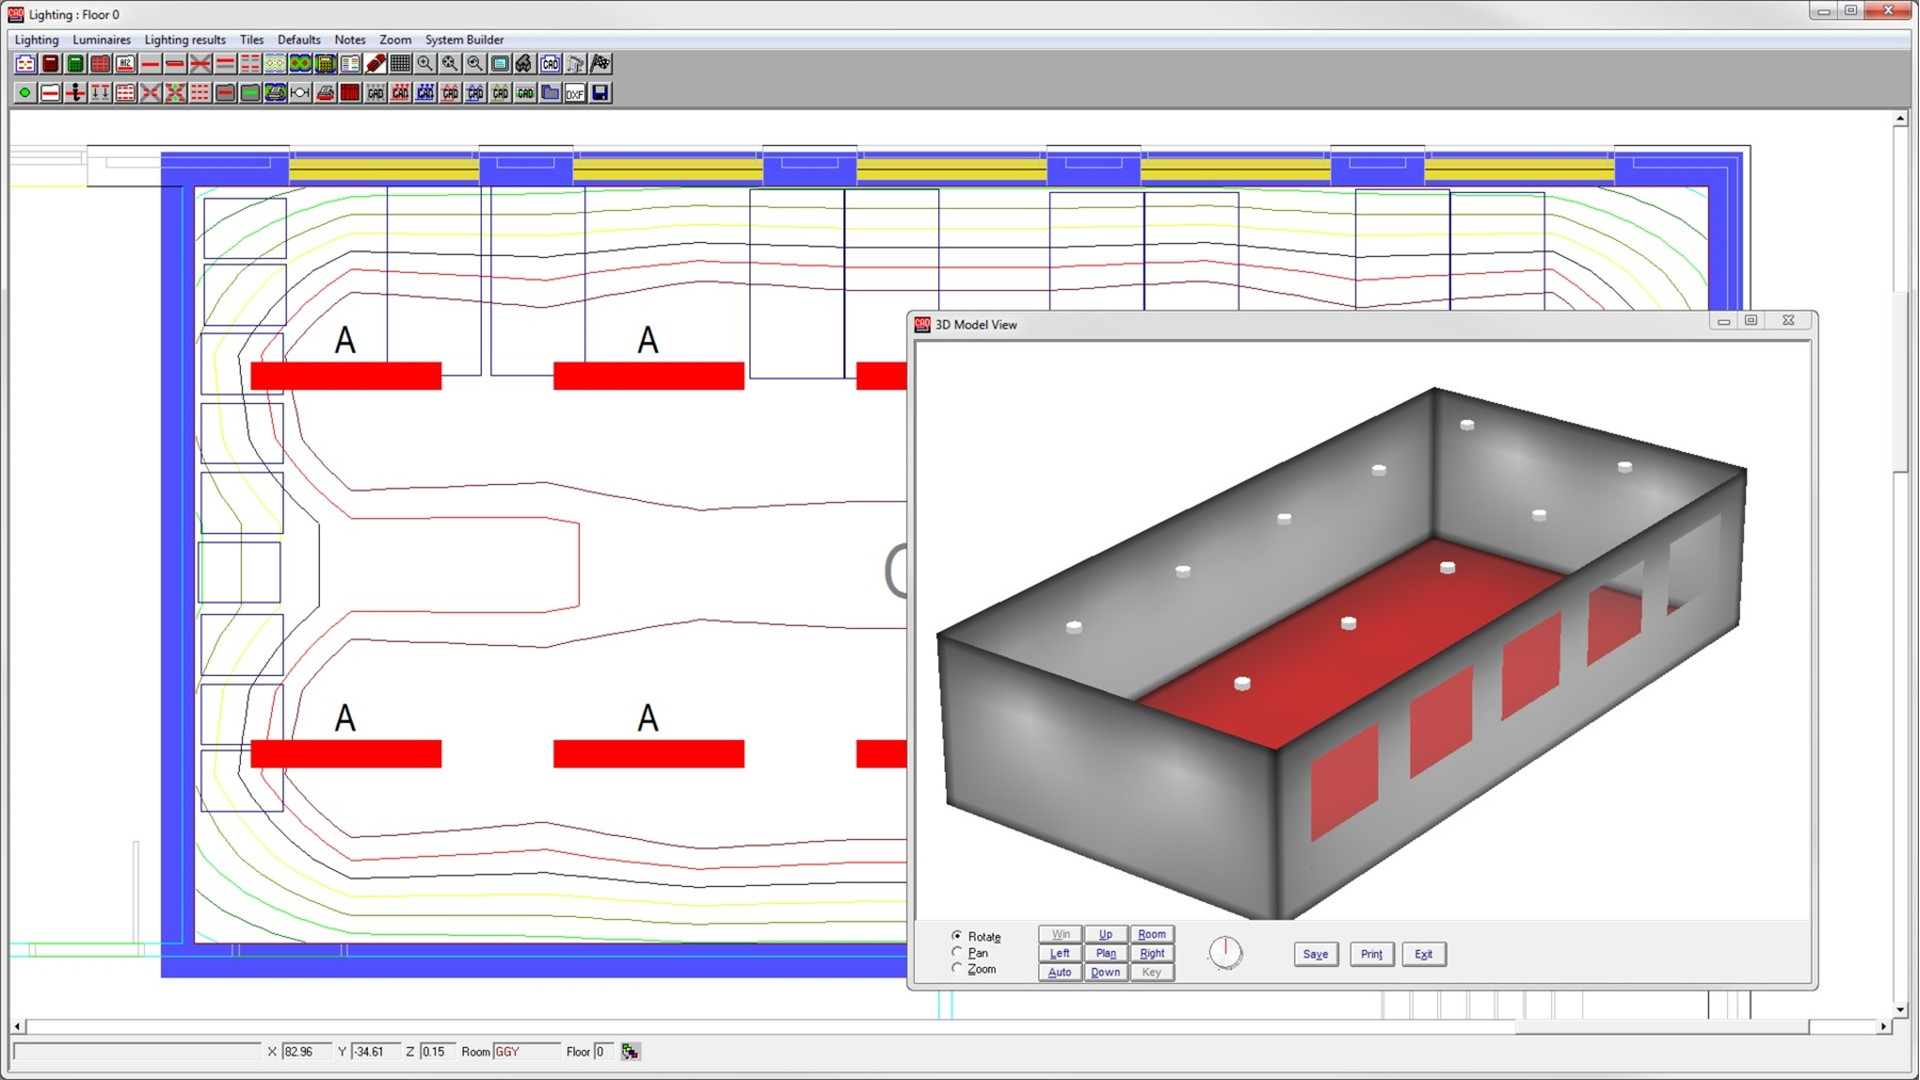 Uk building electrical design analysis software hevacomp for Building design program online